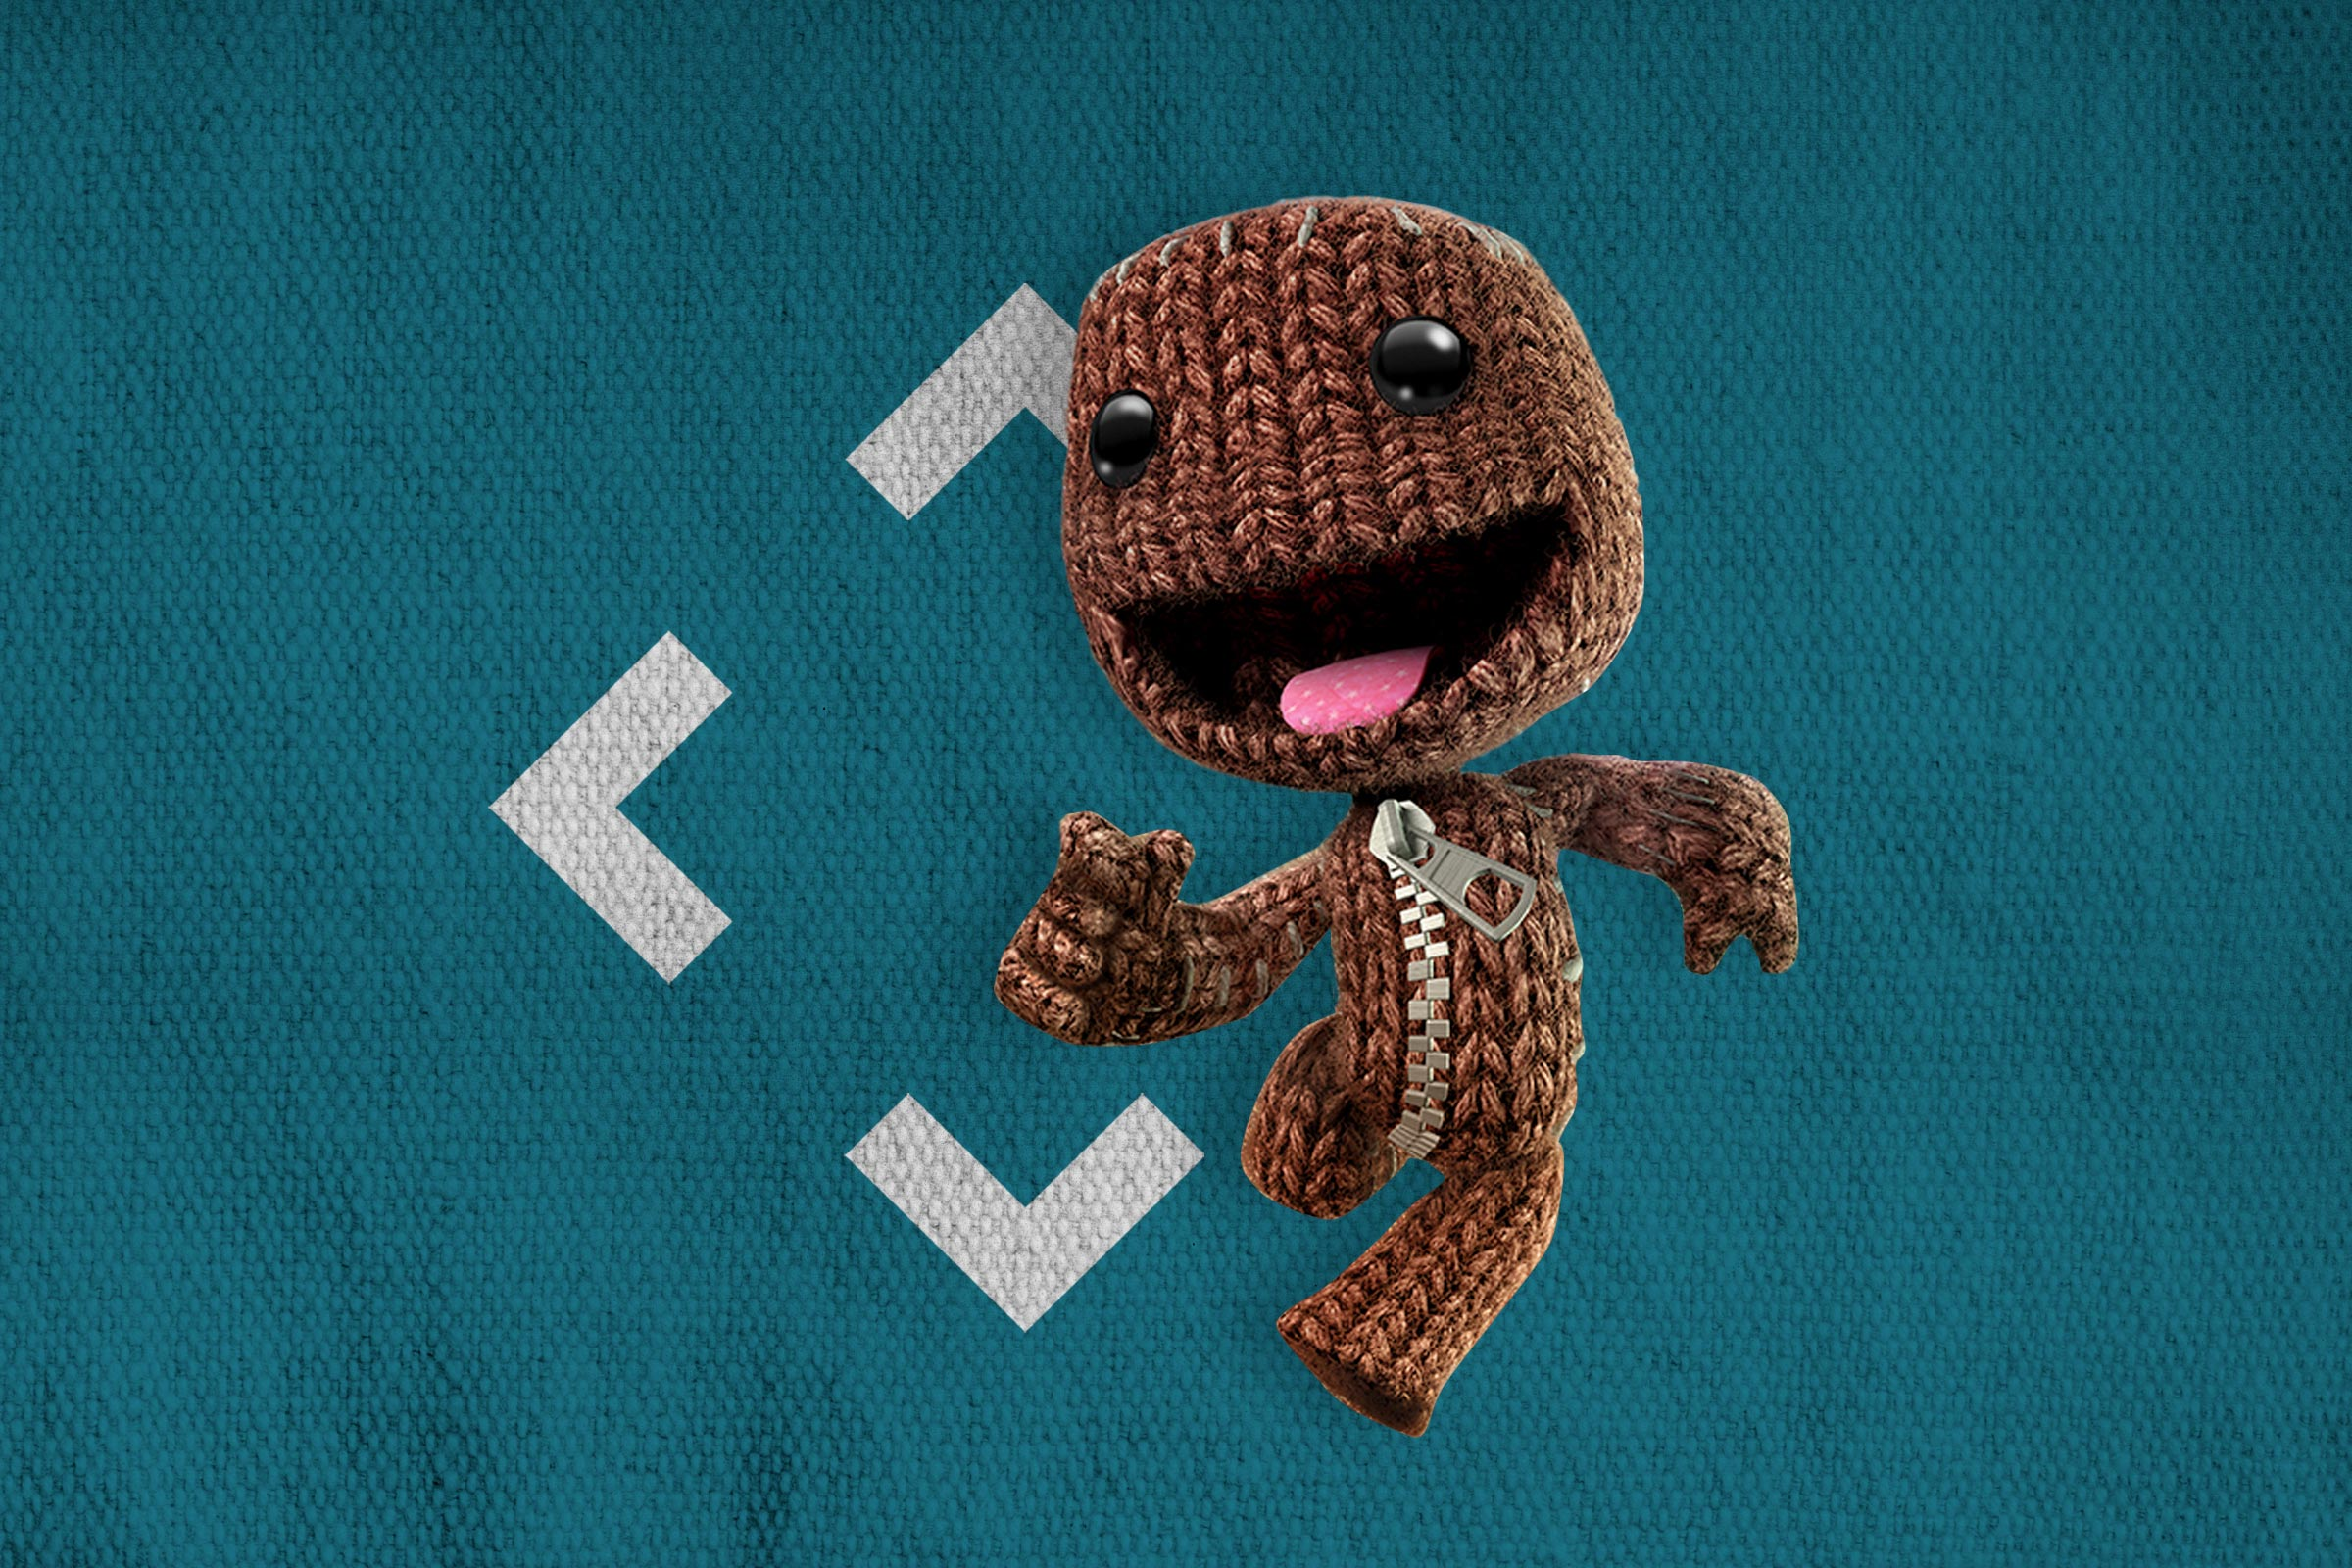 Sackboy: A Big Adventure' ditches create mode for a new direction - The Washington Post